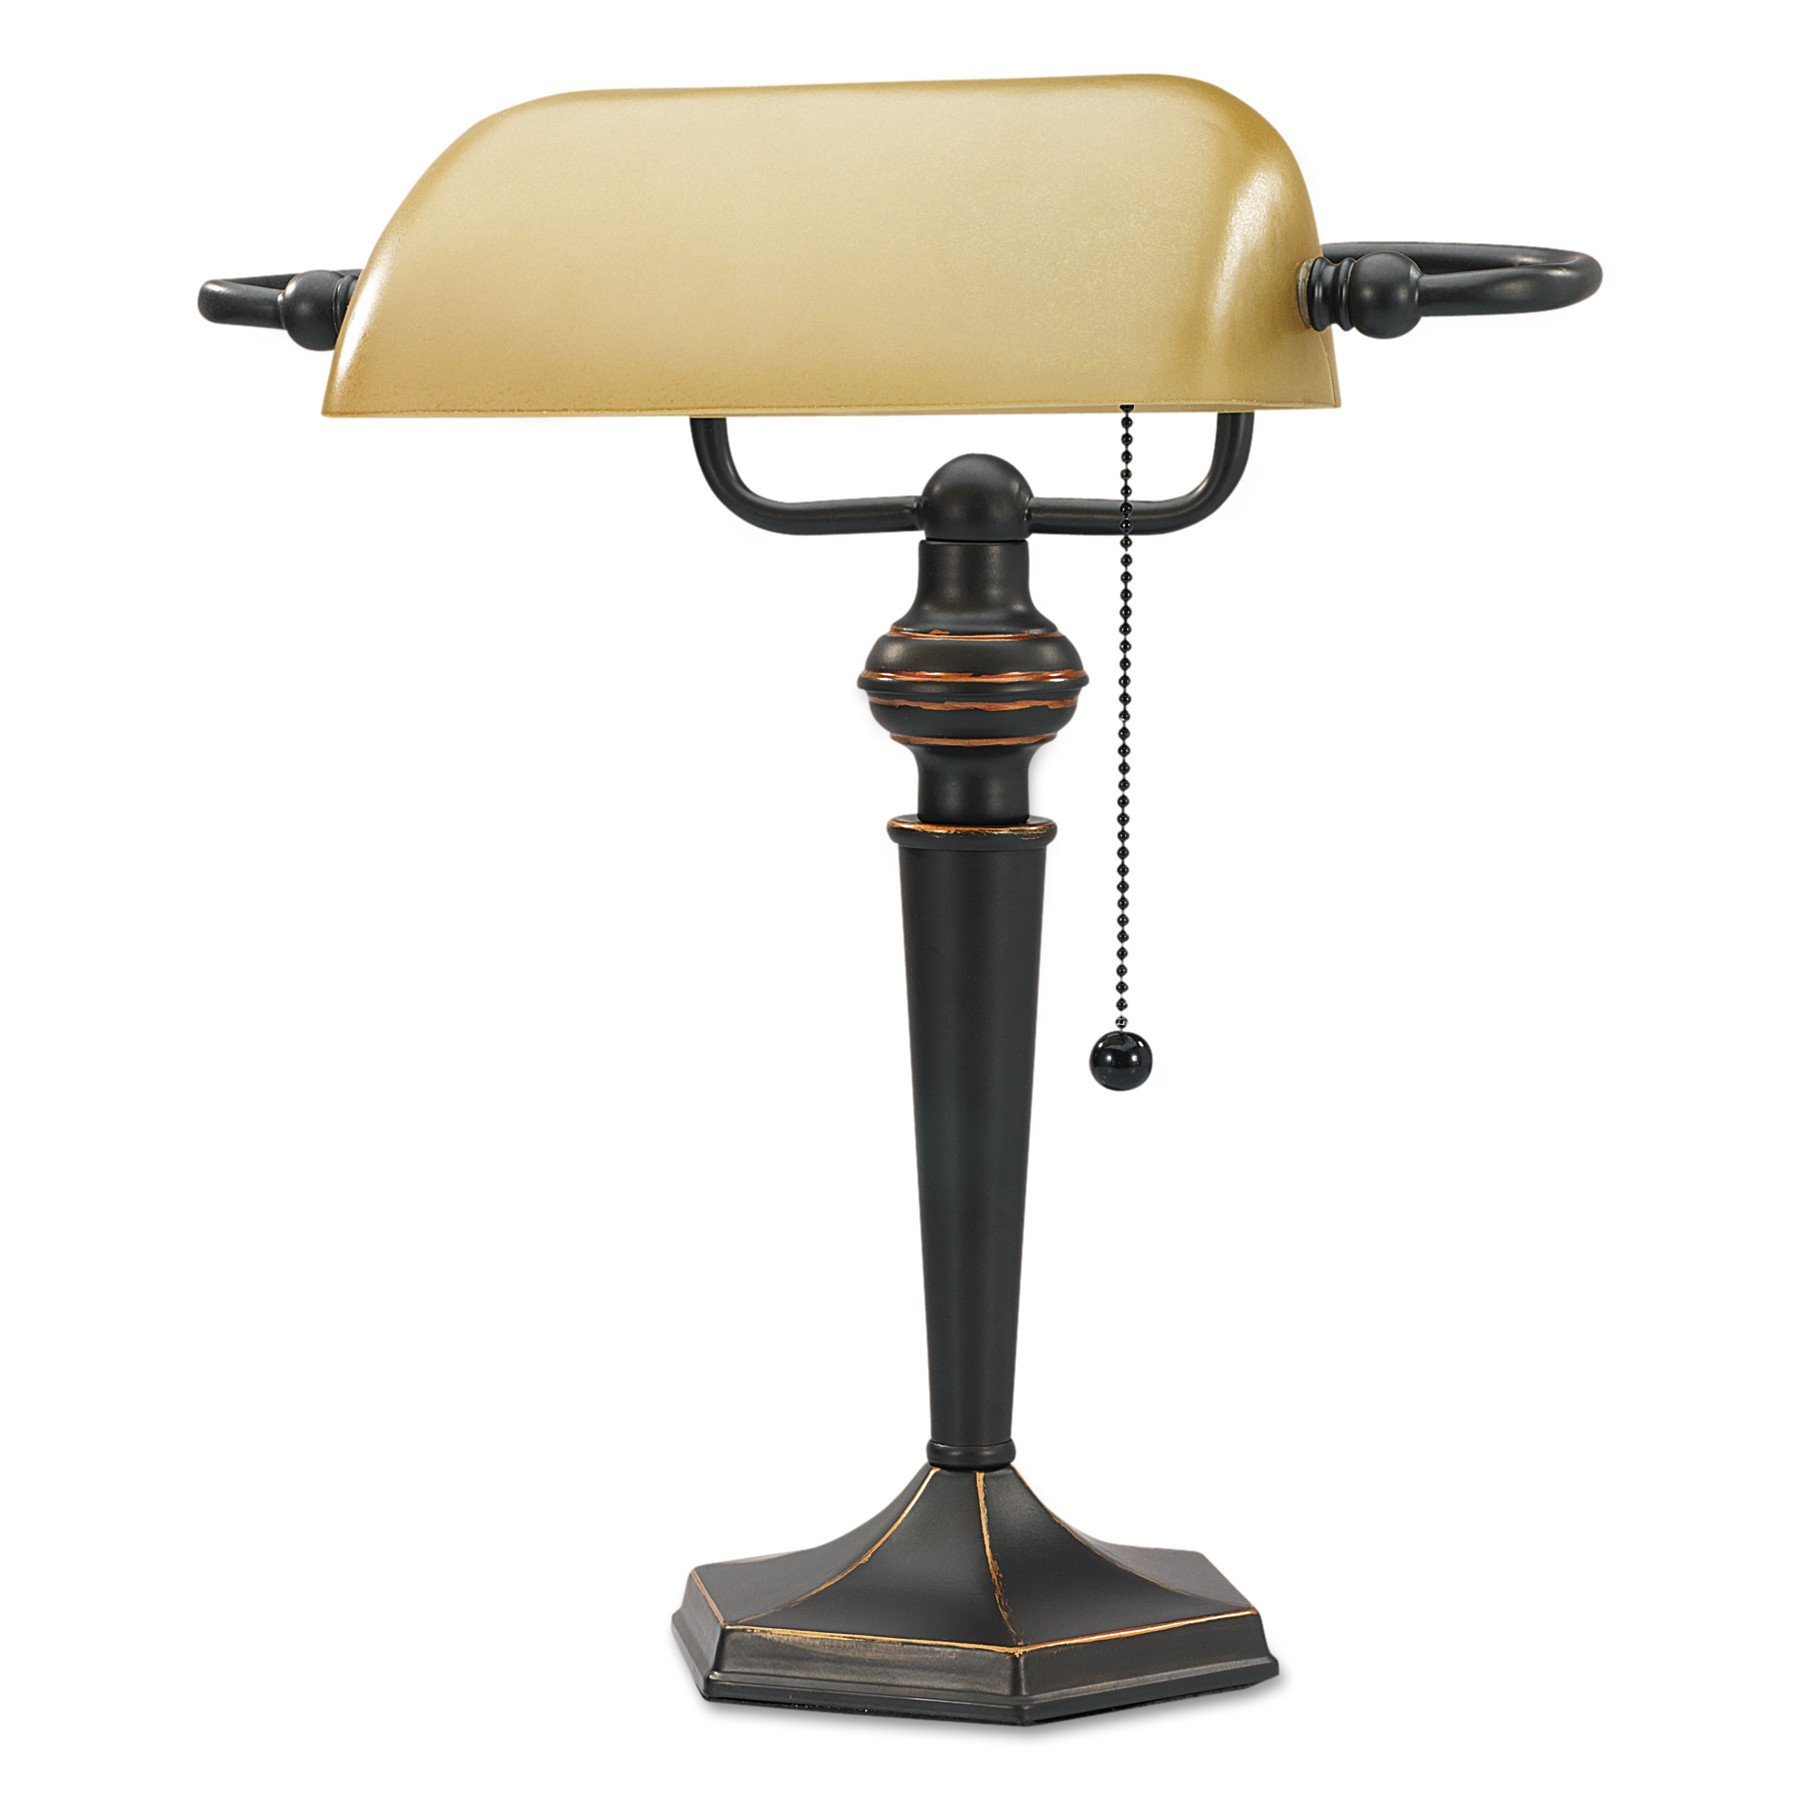 Alera ALELMP537BZ Traditional Banker's Lamp, 16'' High, Amber Shade with Antique Bronze Base